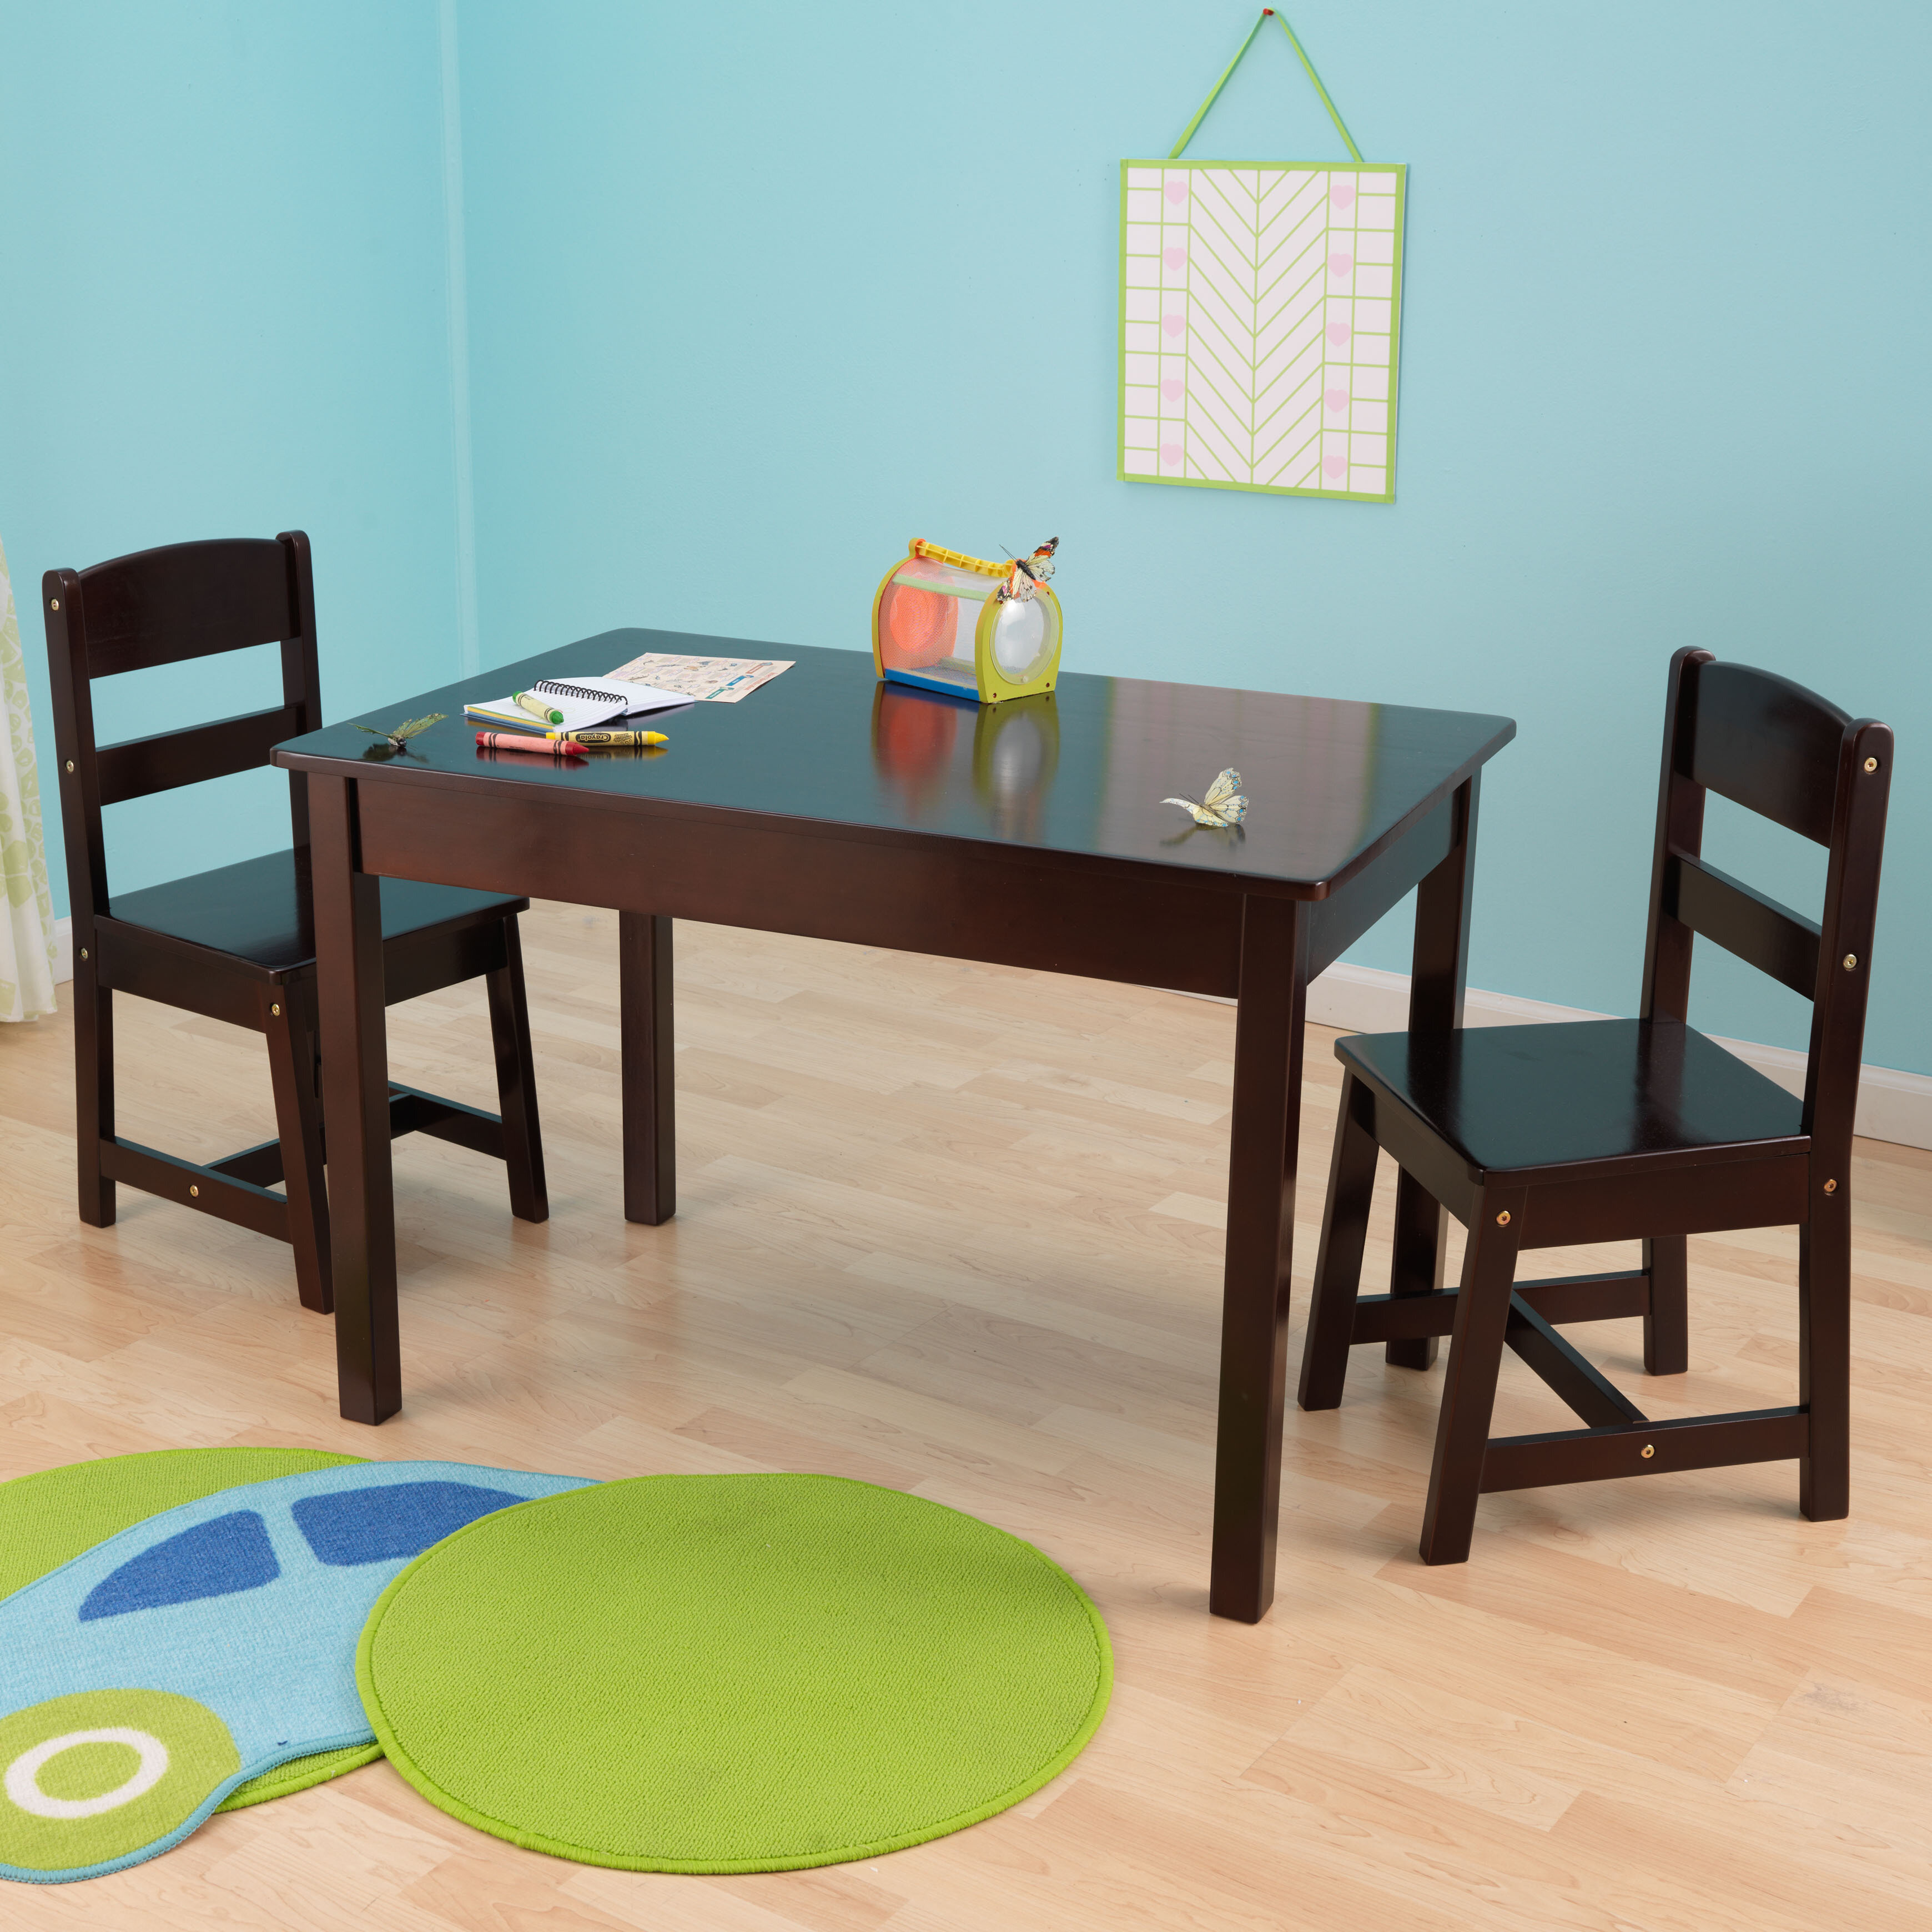 KidKraft Kids 3 Piece Wood Table & Chair Set & Reviews | Wayfair